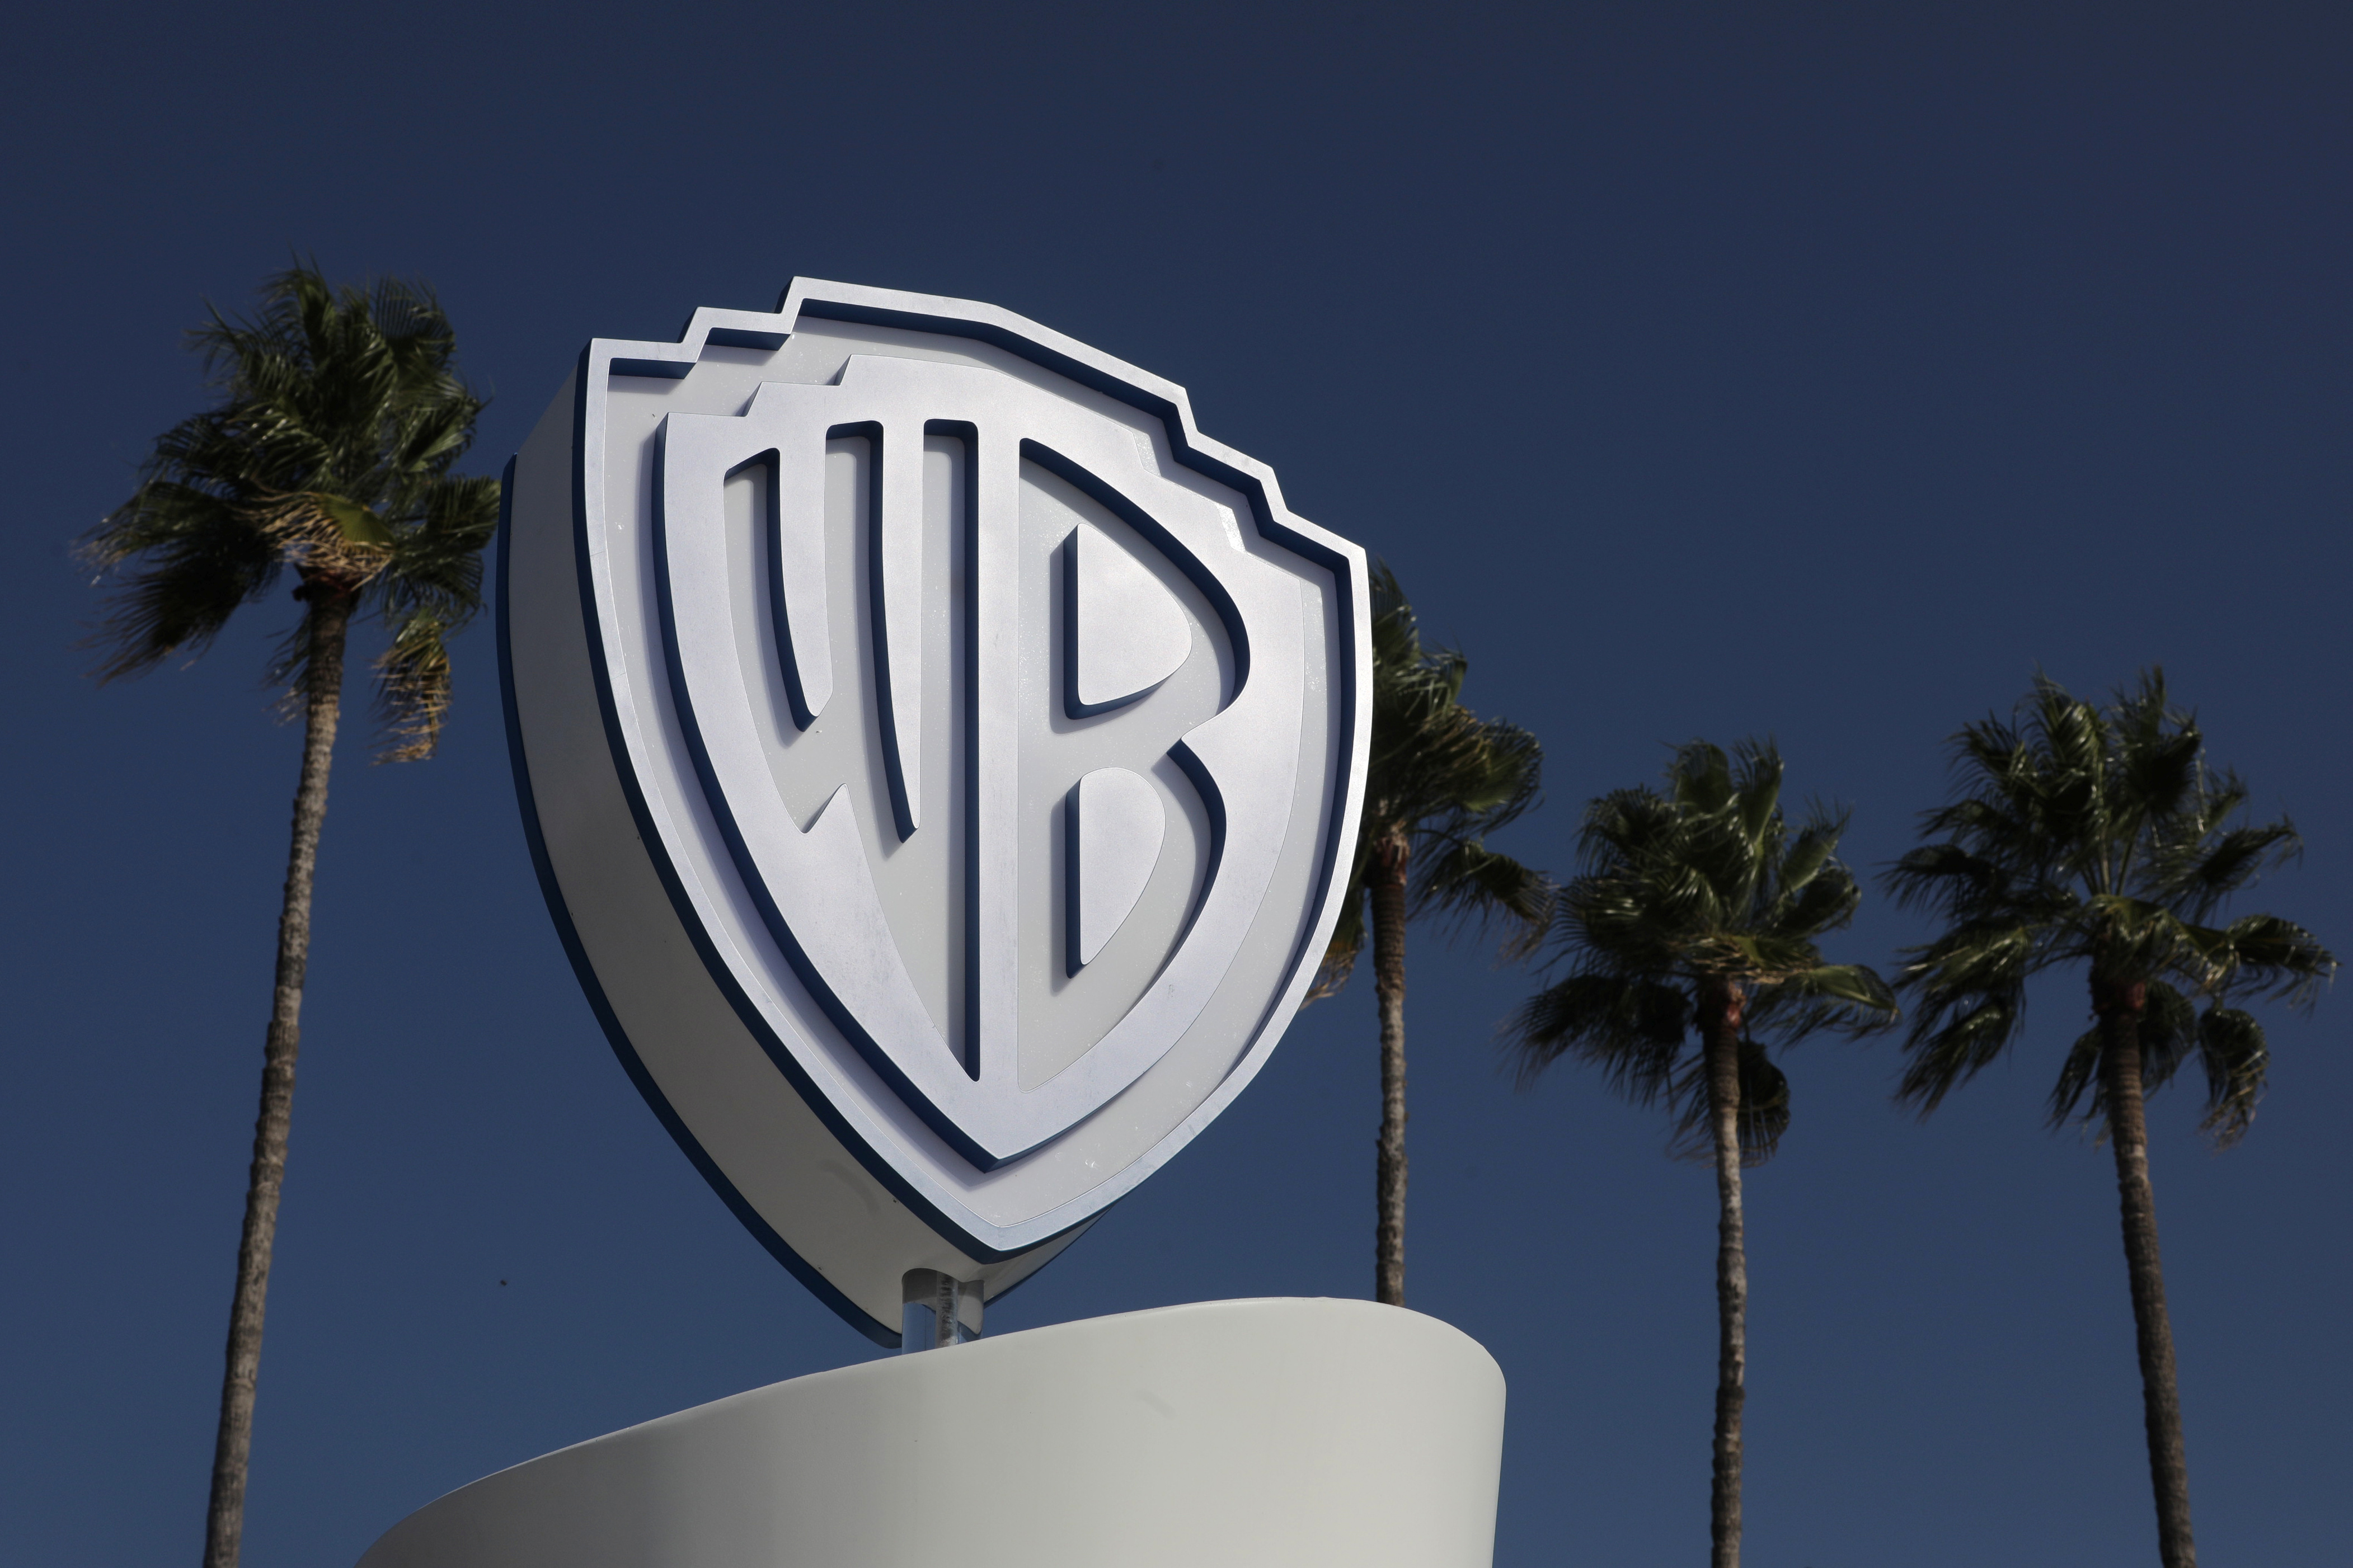 The Warner Bros logo is seen during the annual MIPCOM television programme market in Cannes, France, October 14, 2019. REUTERS/Eric Gaillard